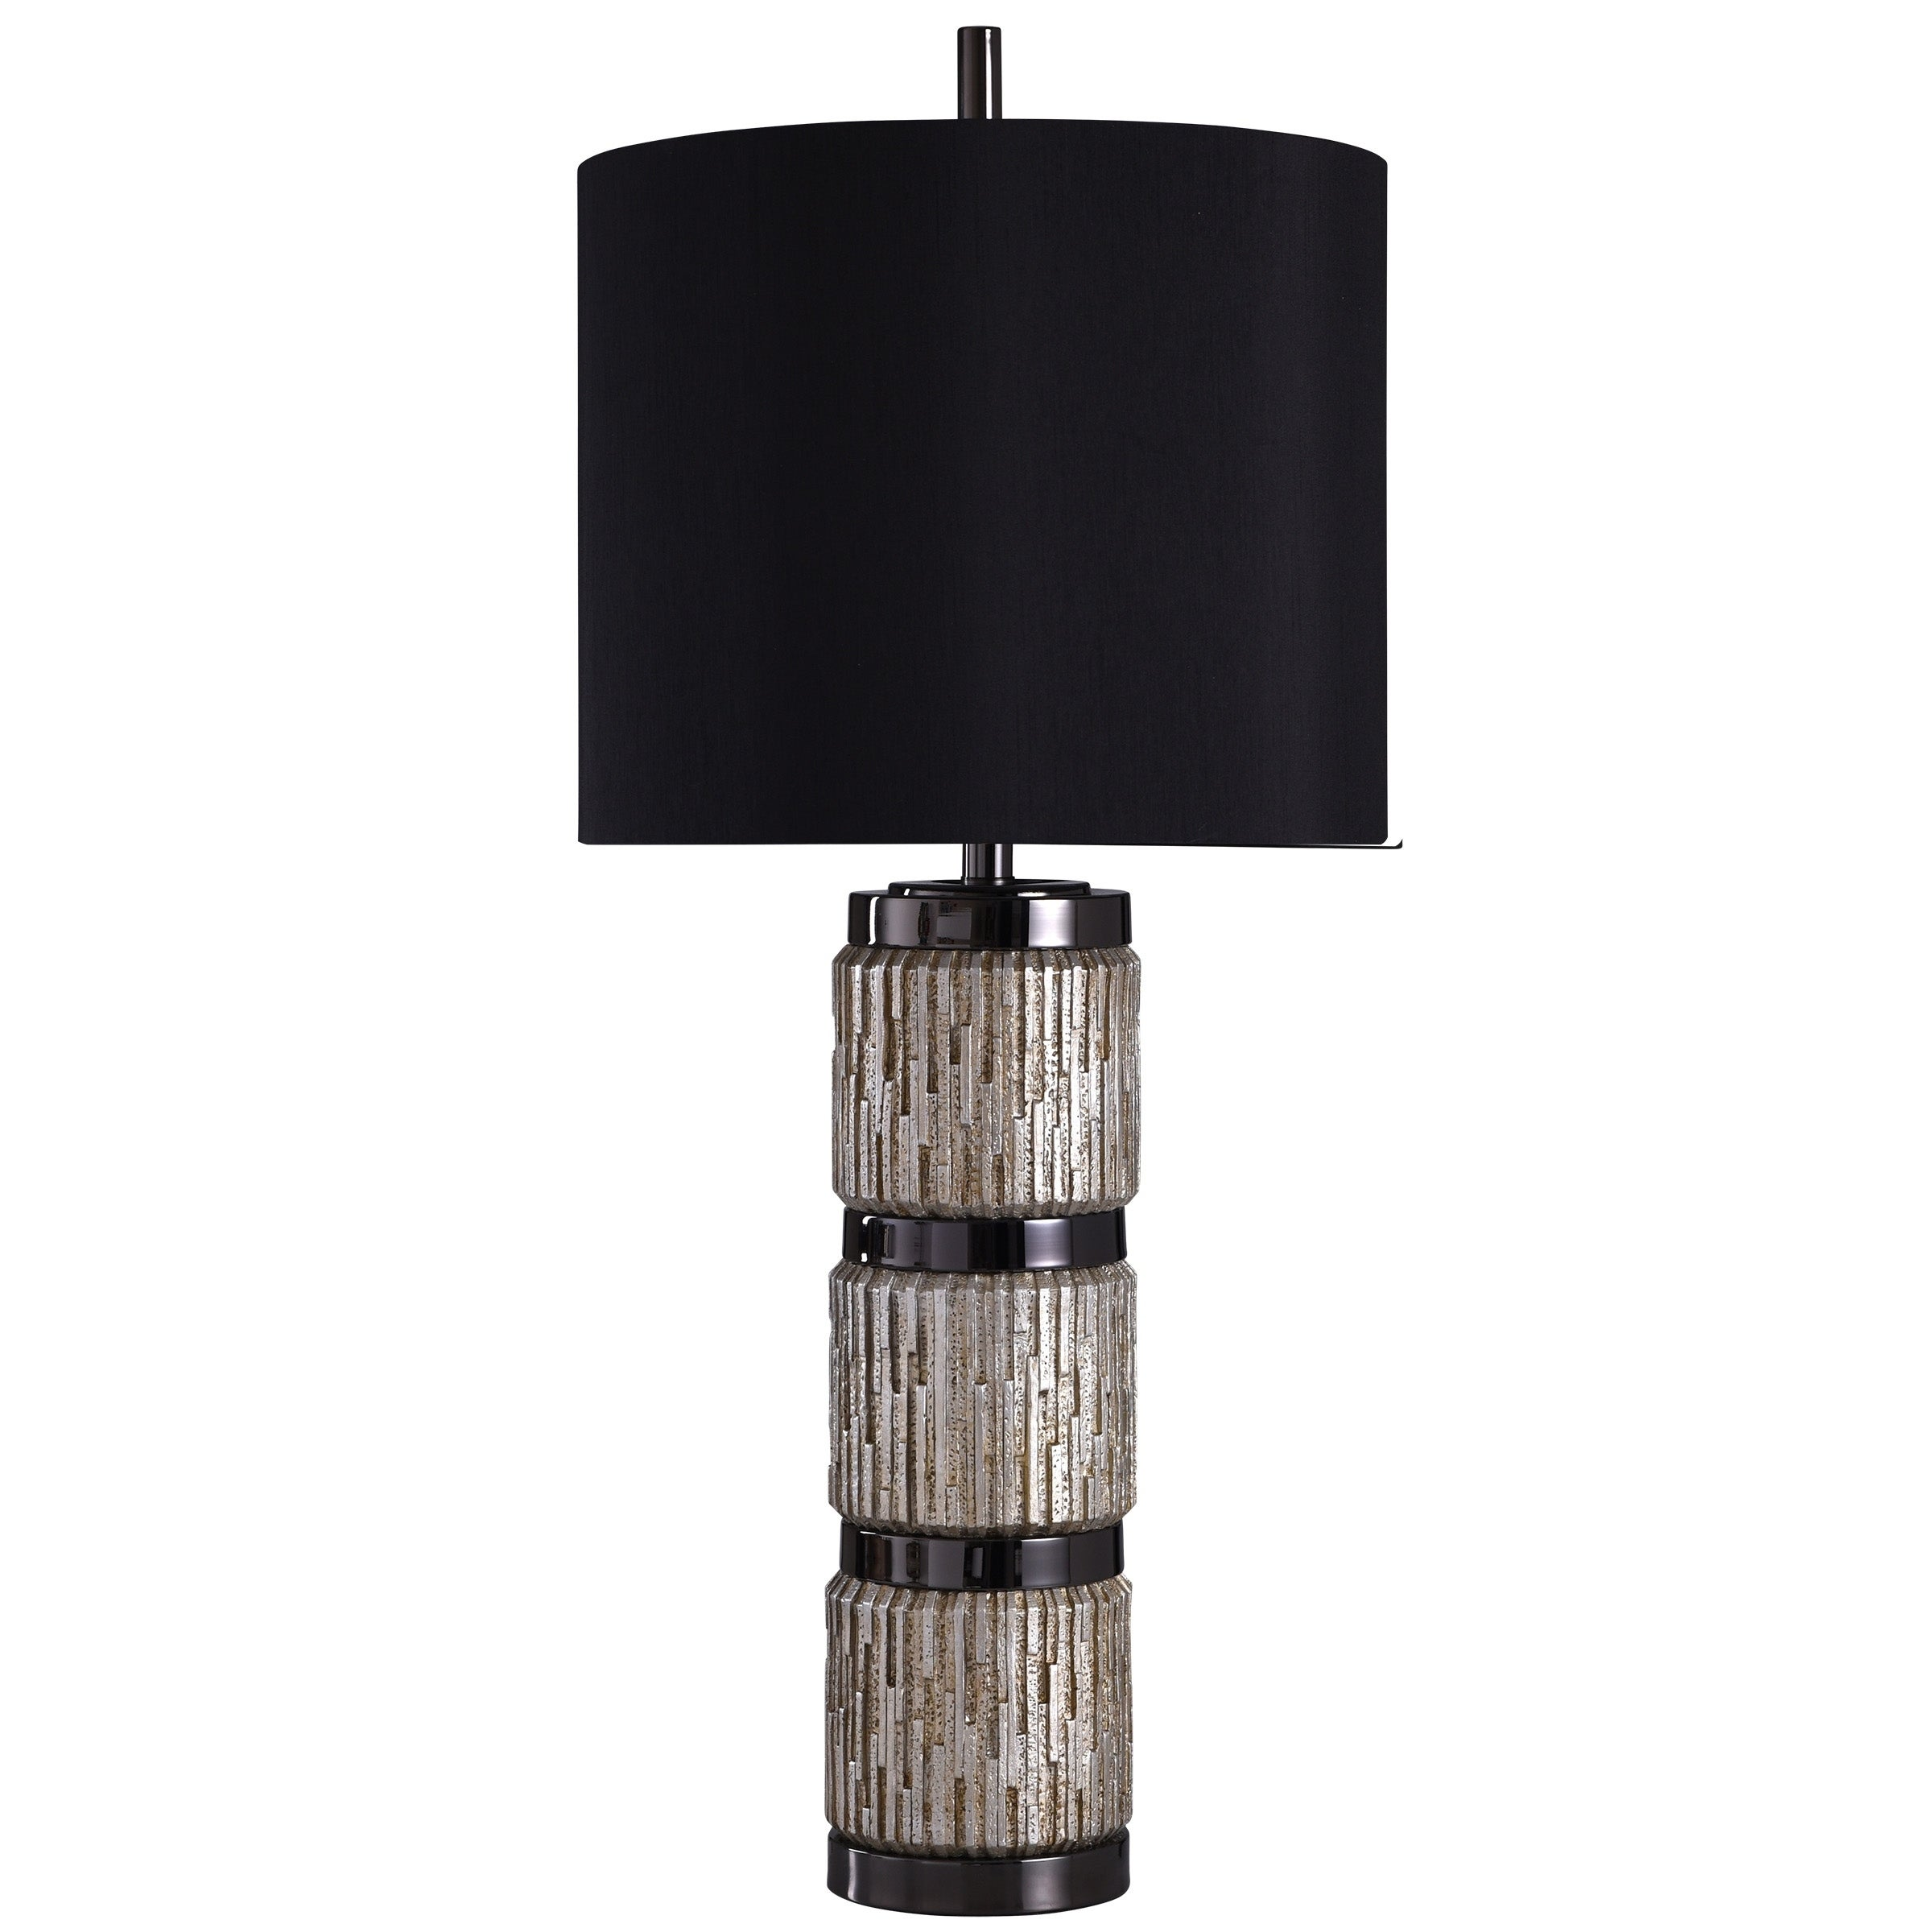 Silver Table Lamp Black Shade